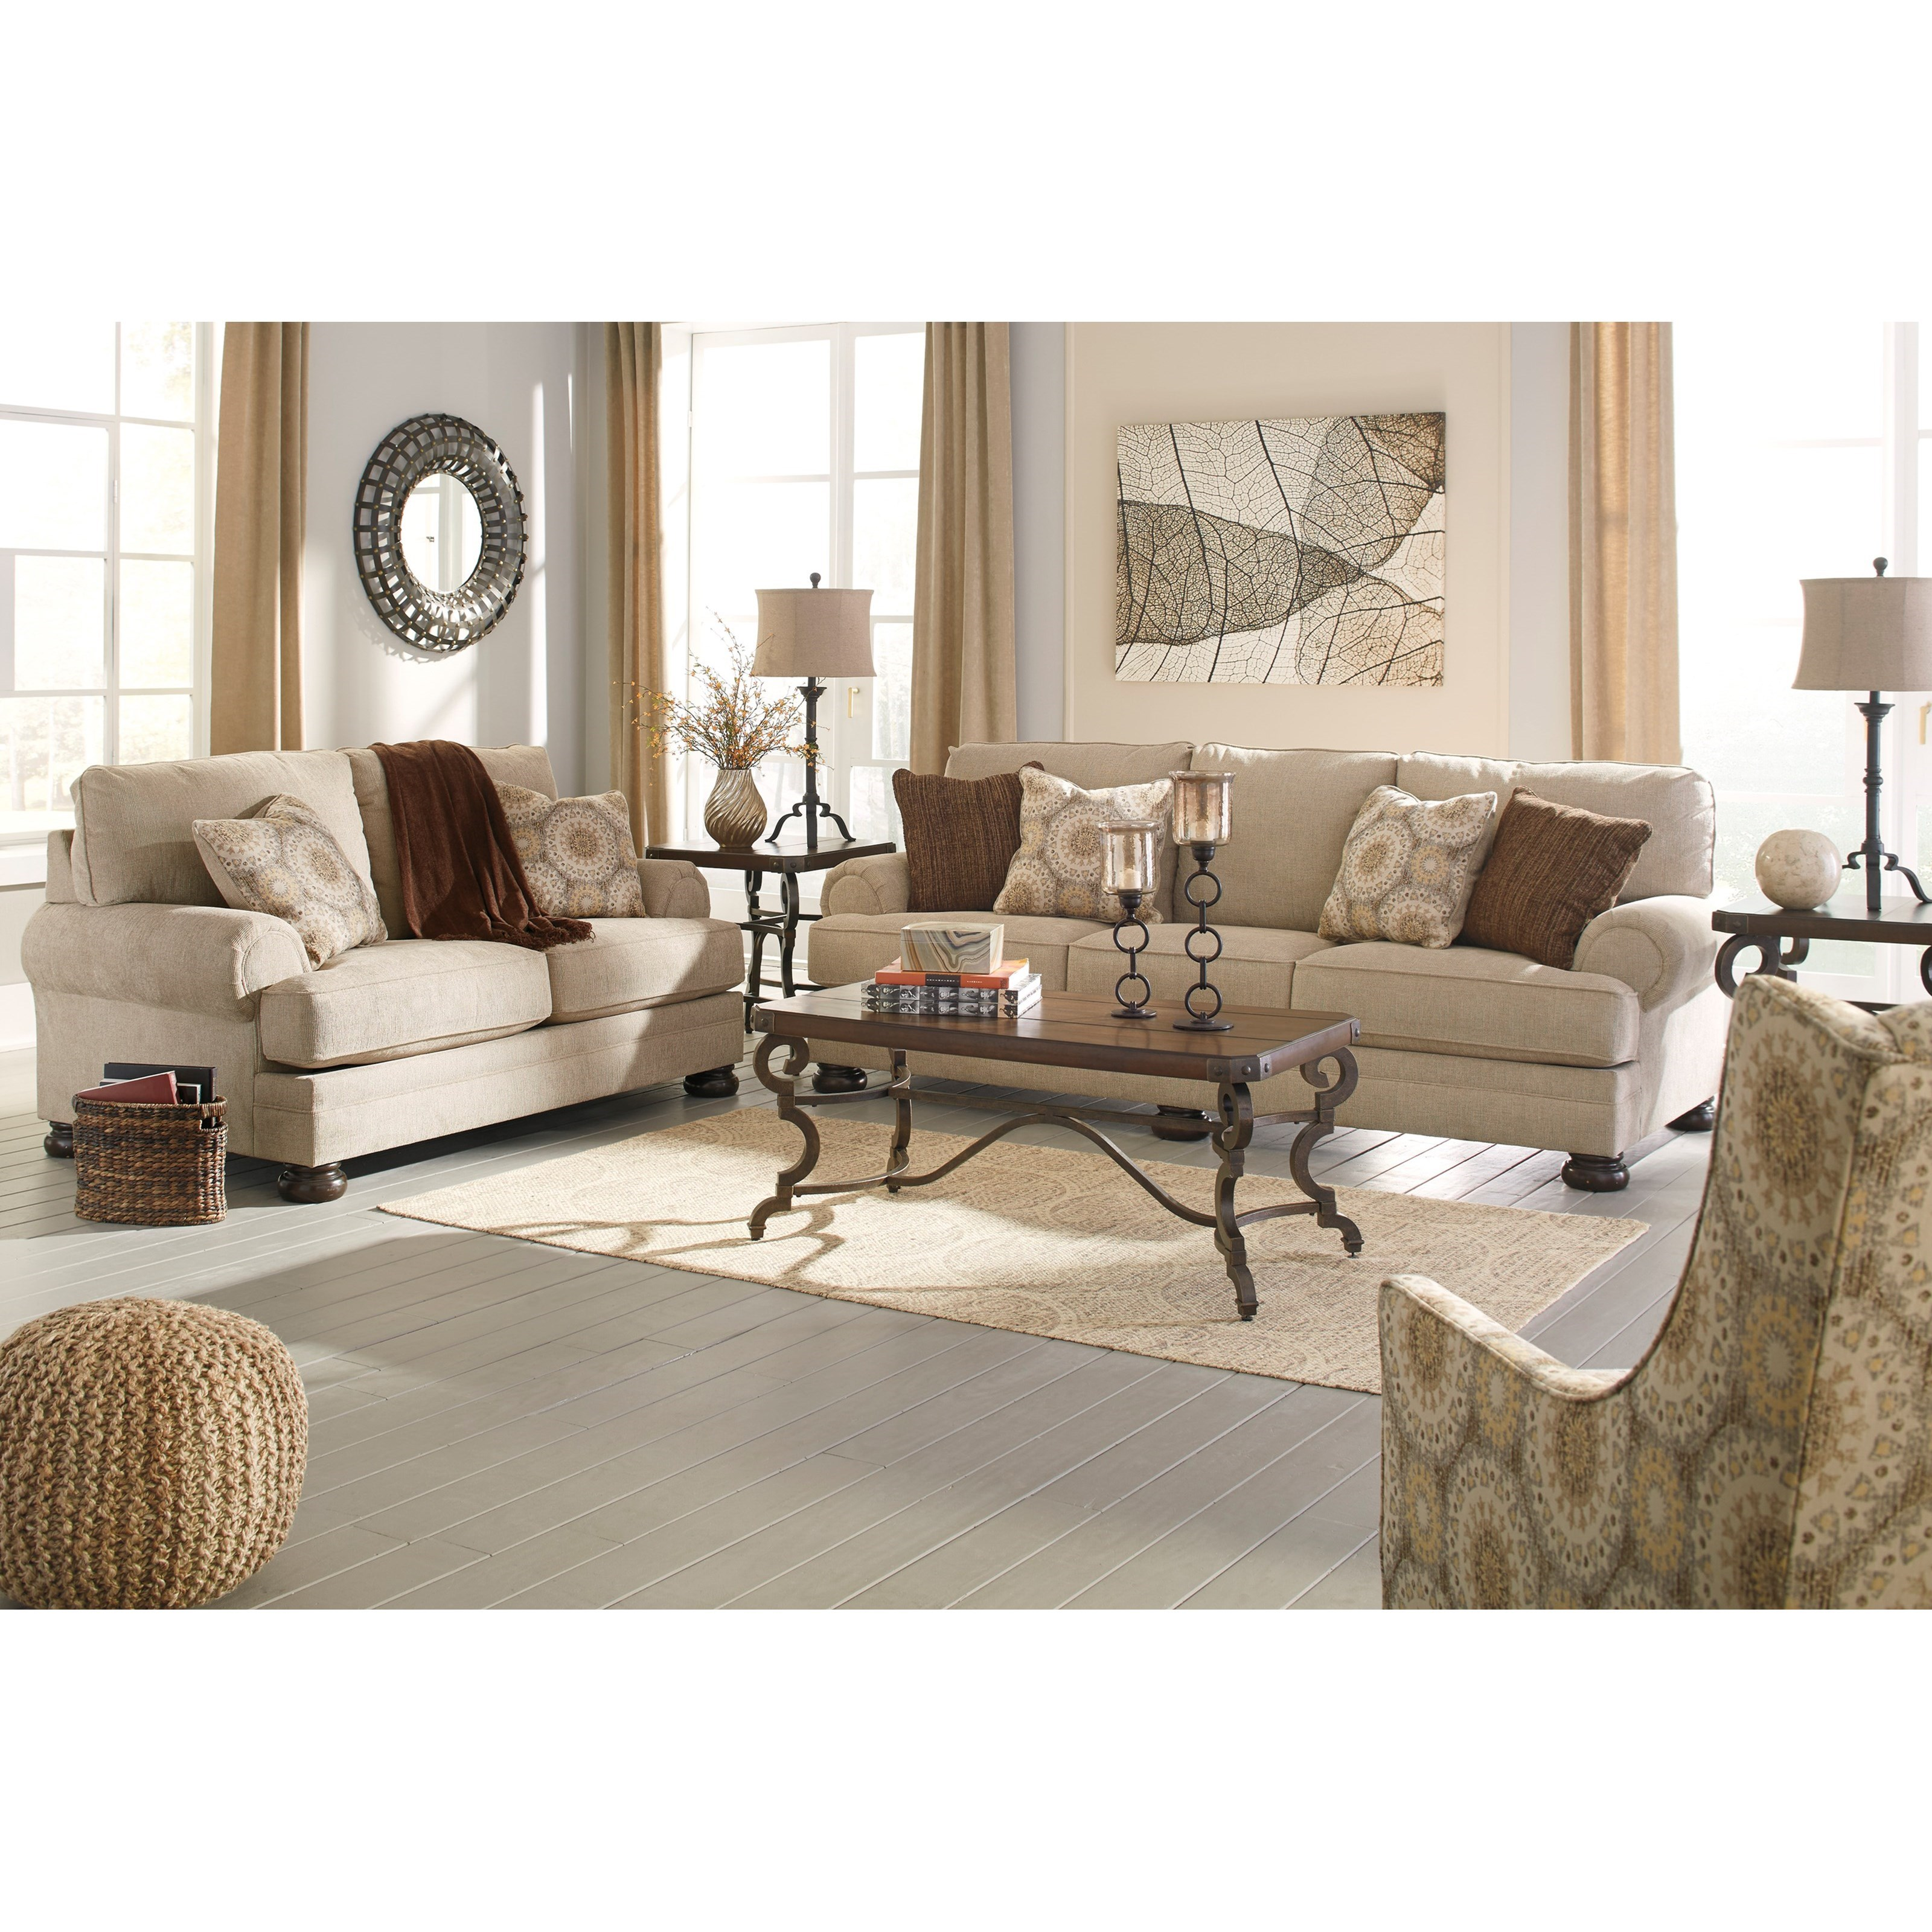 Benchcraft Quarry Hill Stationary Living Room Group Del